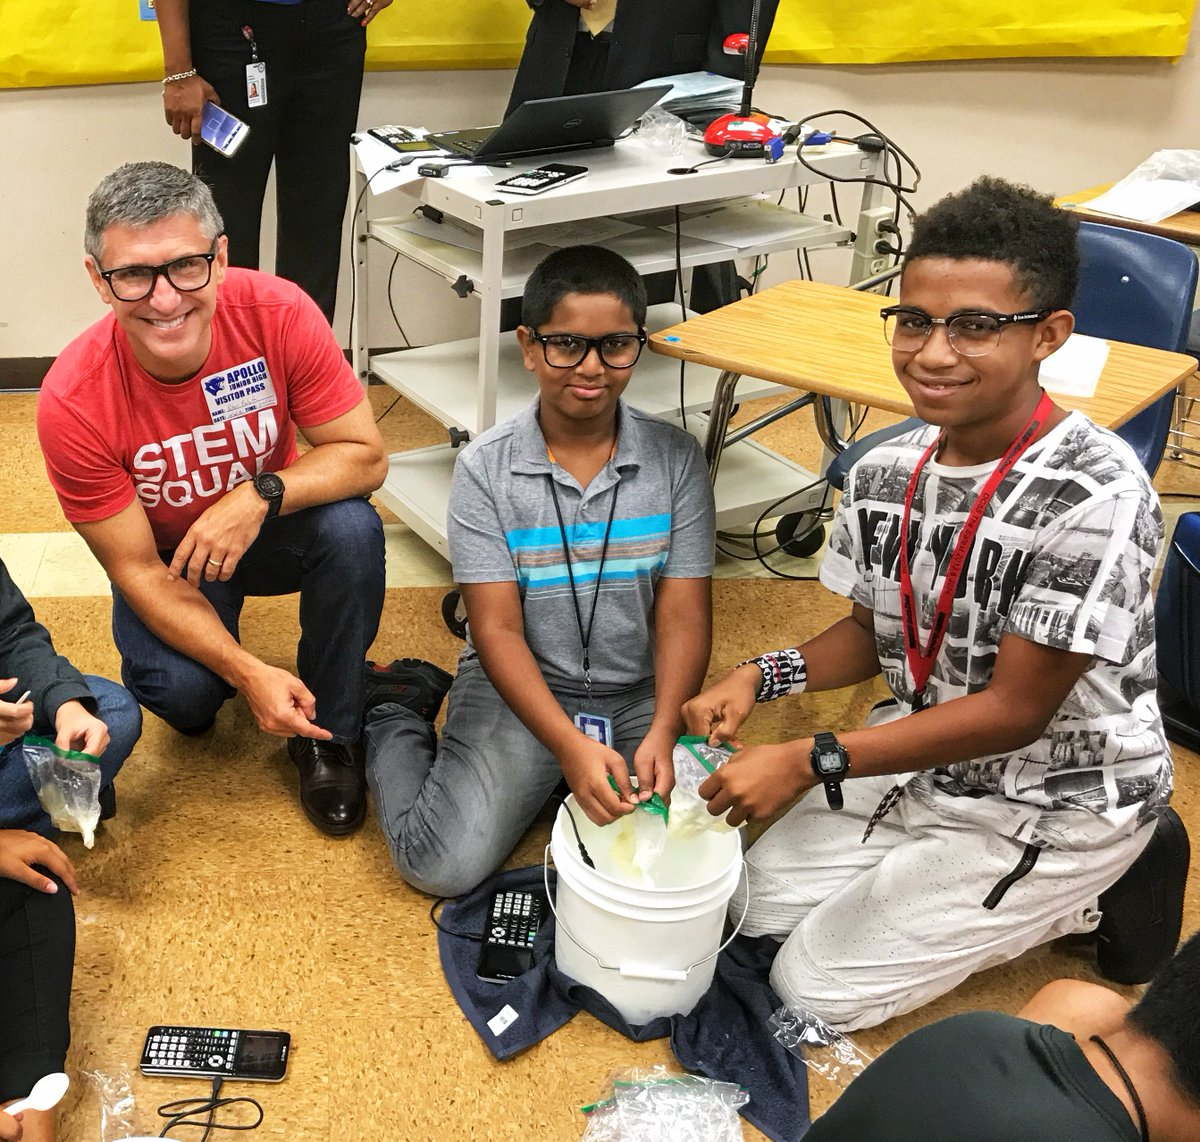 To celebrate #JackKilbyDay, the @TICalculators #STEMSquad partnered with @Berkner_HS and went to @Apollo_JH in Richardson, TX, to share the sweet side of math and science with students by exploring the matter and phase changes of ice cream. https://t.co/AVMrowQq00